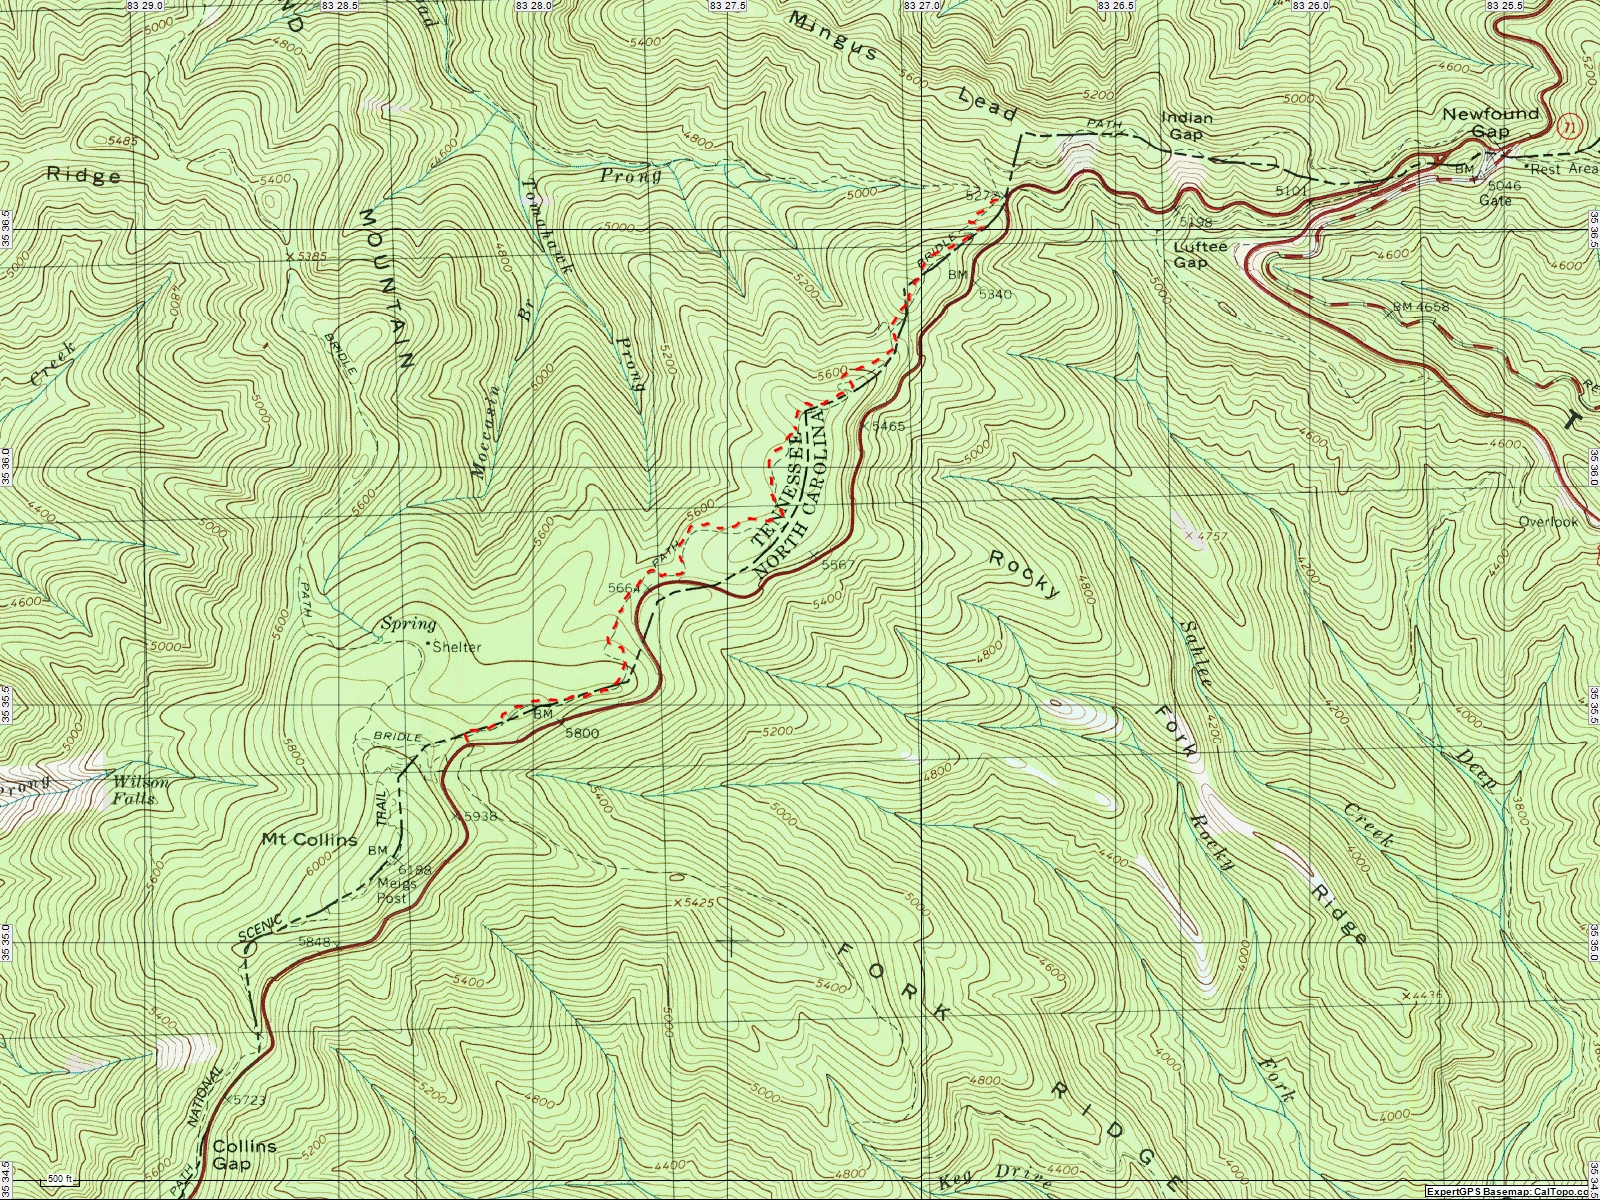 American Travel Journal Fork Ridge Trail To Road Prong Trail At - Appalachian trail topo map